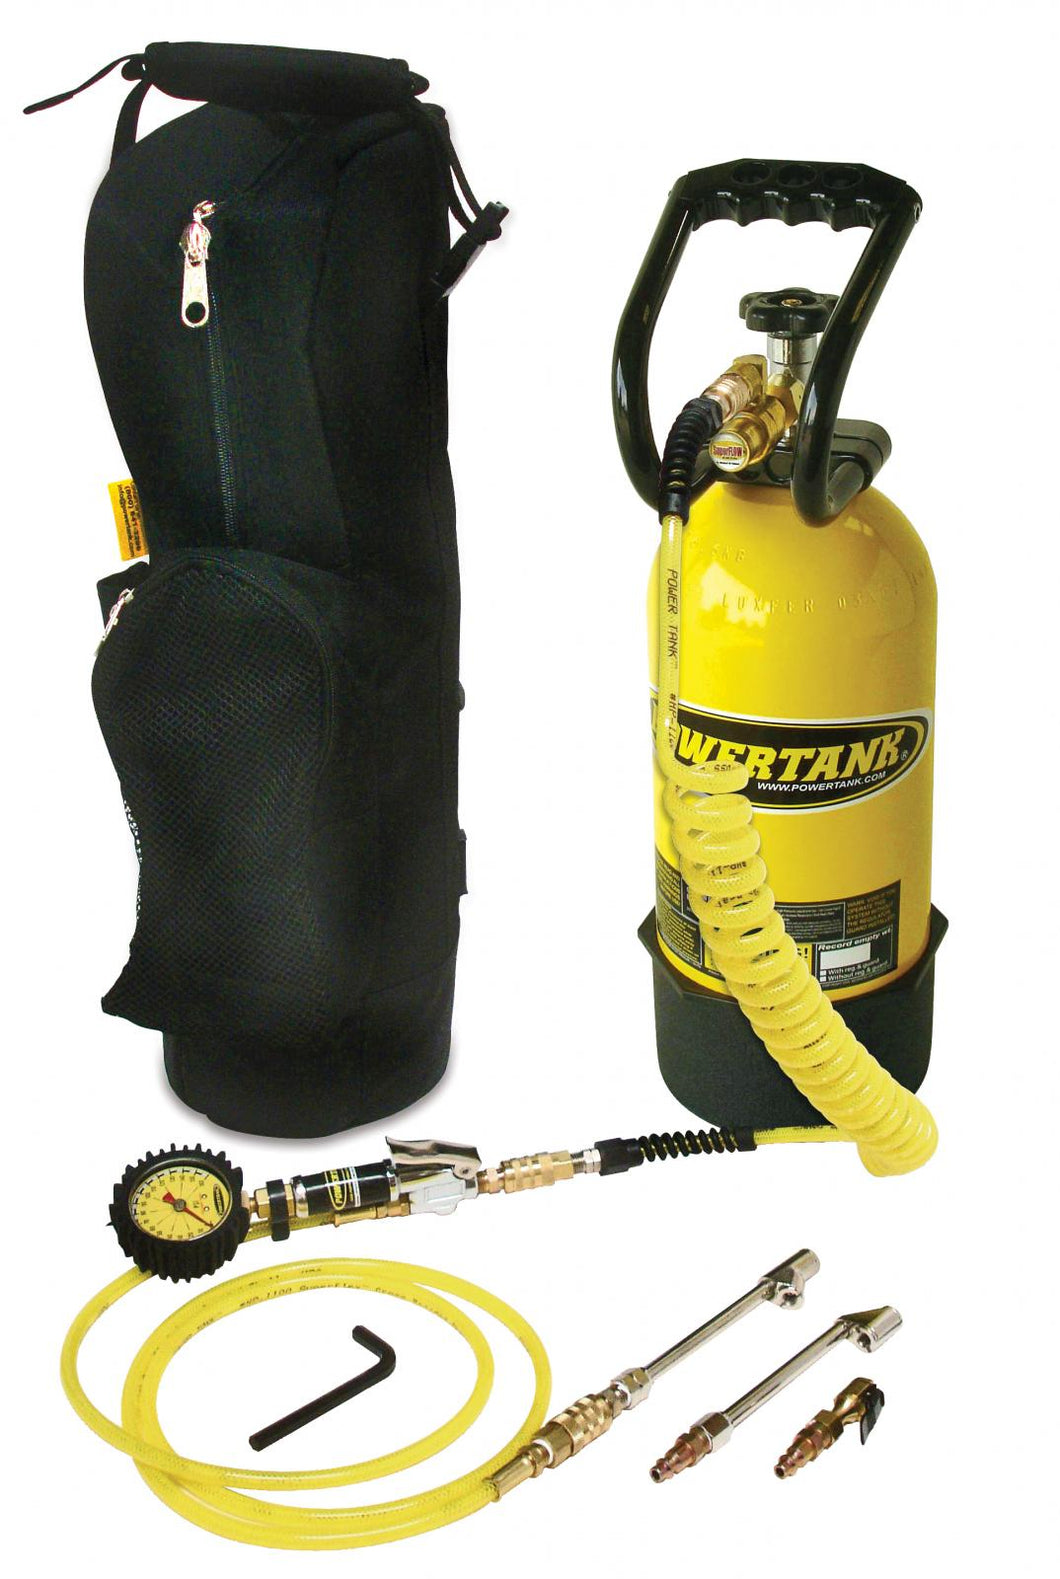 CO2 Tank 10 LB RV Gold Package Team Yellow Power Tank